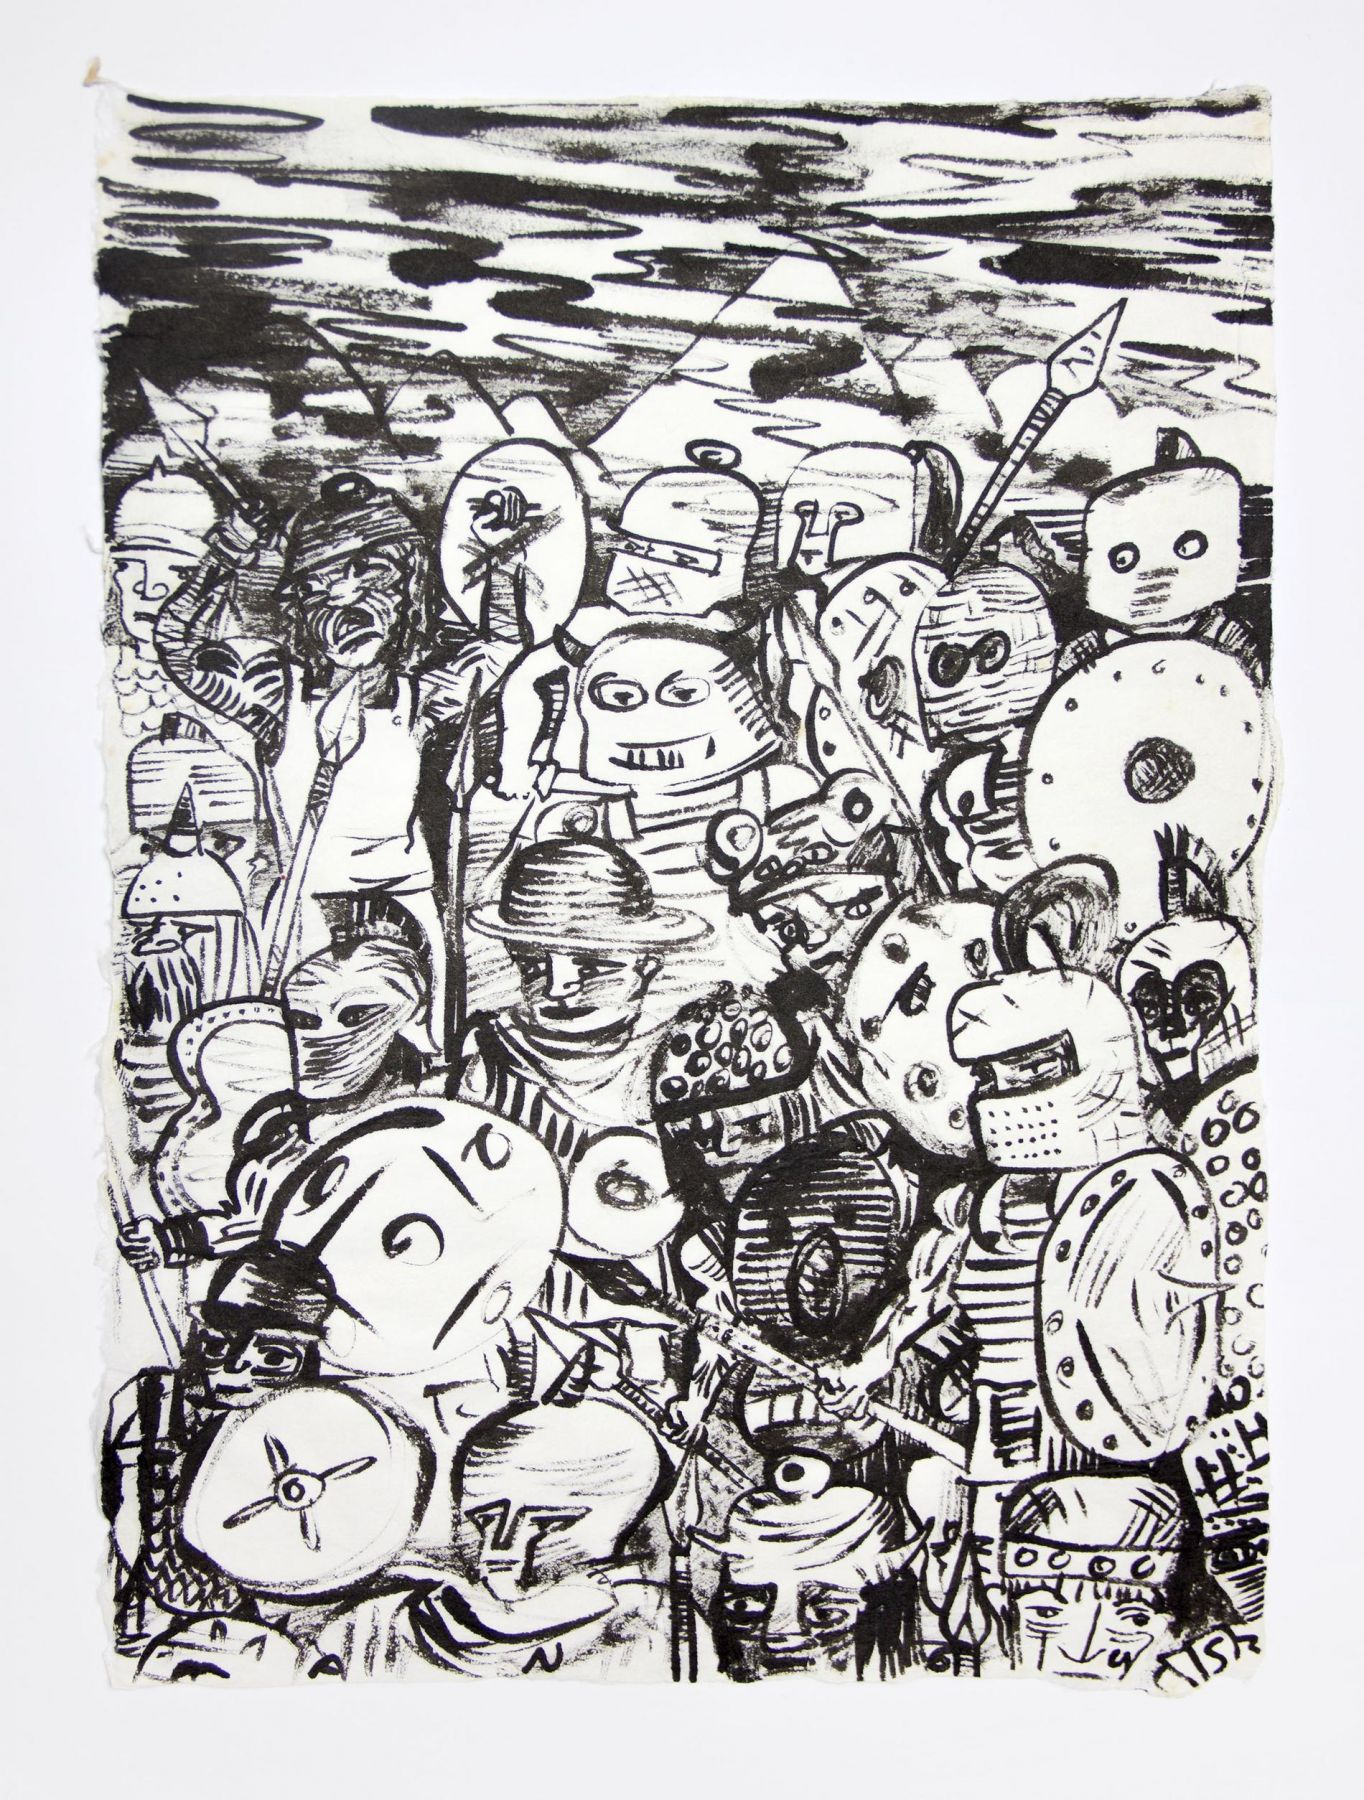 , The Gang, 1990, Ink on mulberry paper, 17 x 12 1/2 in.